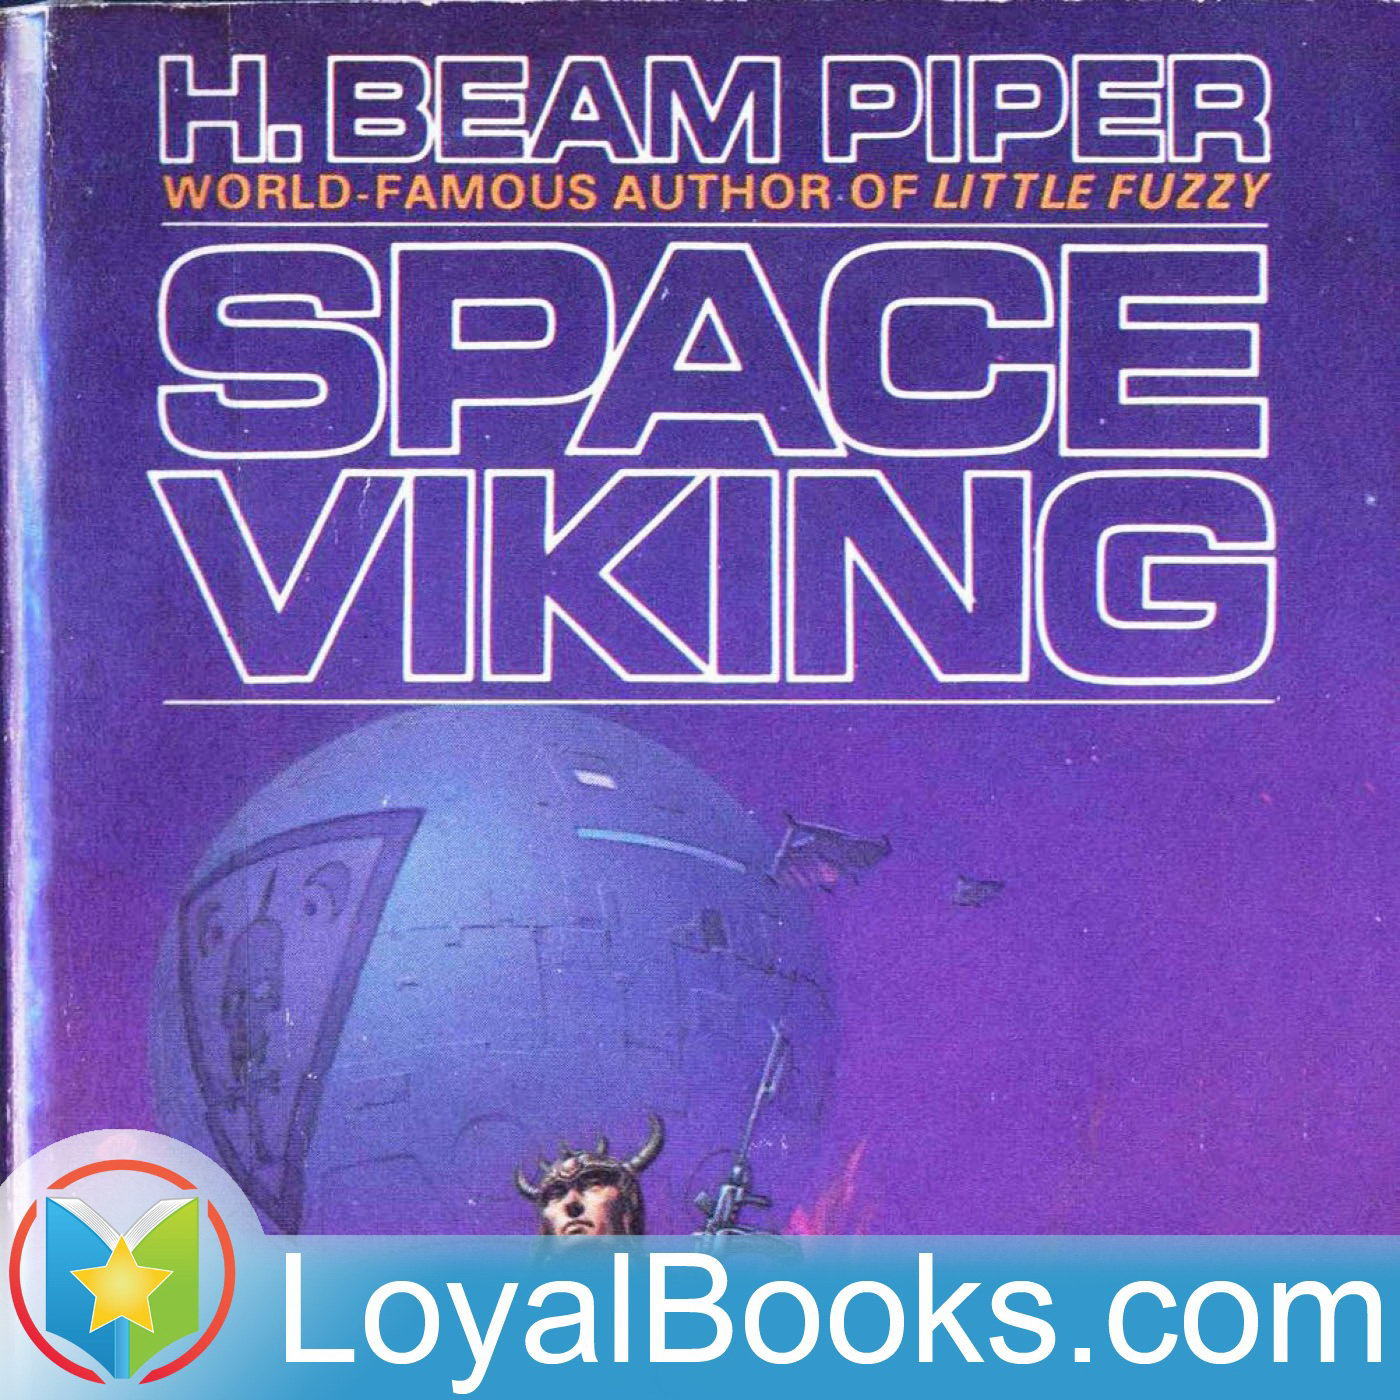 <![CDATA[Space Viking by H. Beam Piper]]>